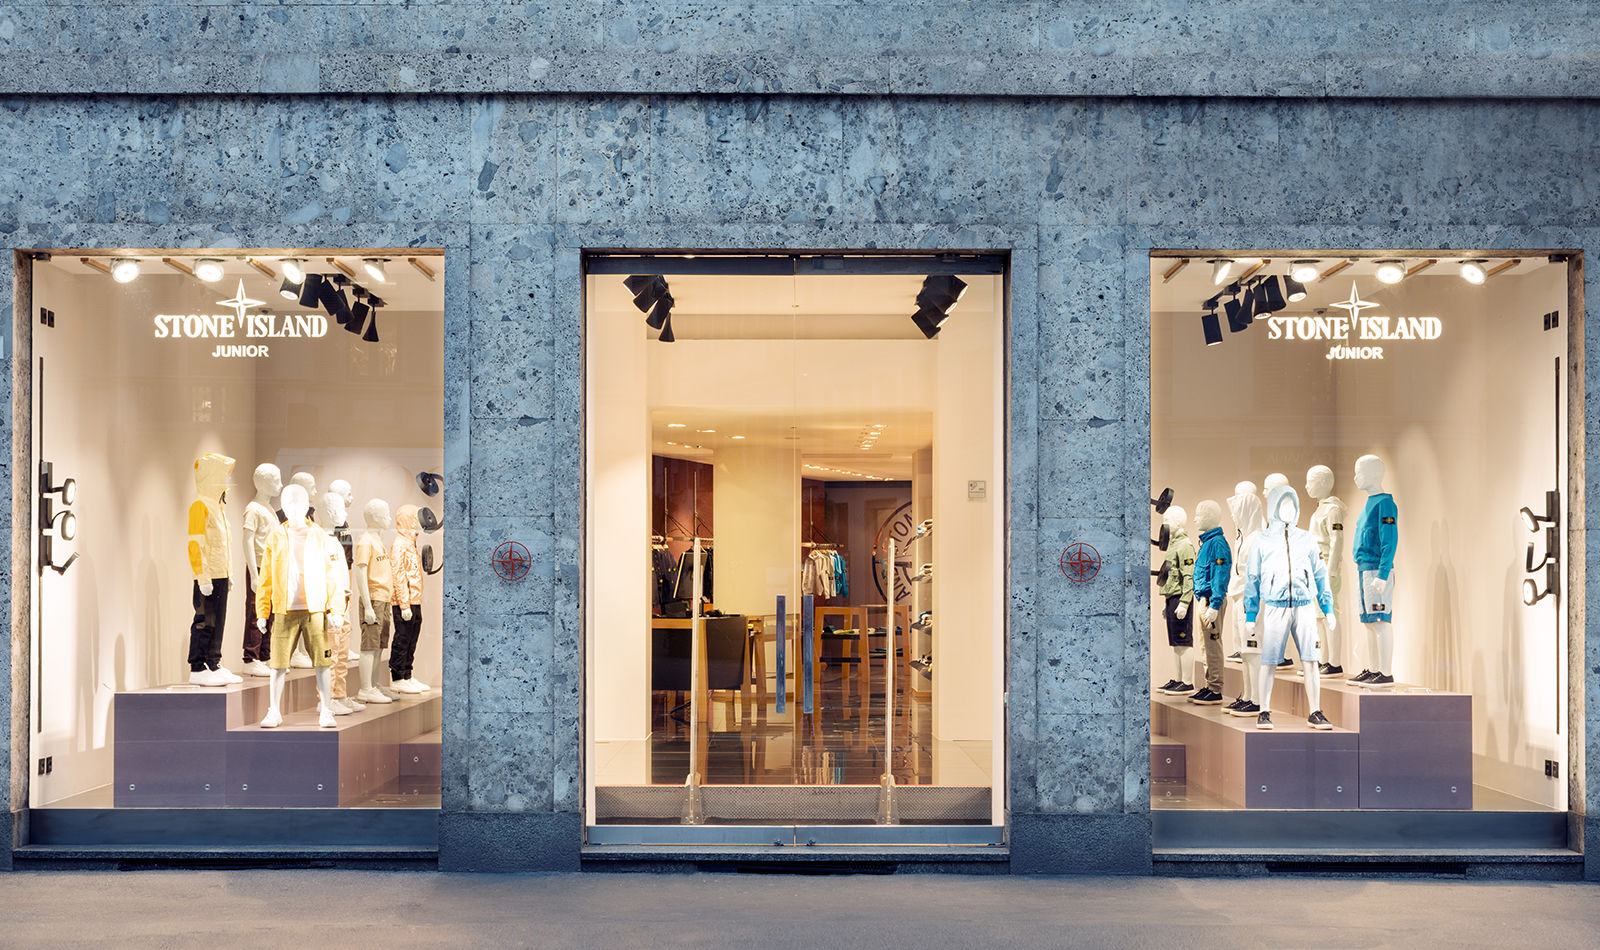 Street view of storefront showing two full length windows, a central glass entrance and brightly lit store interior.